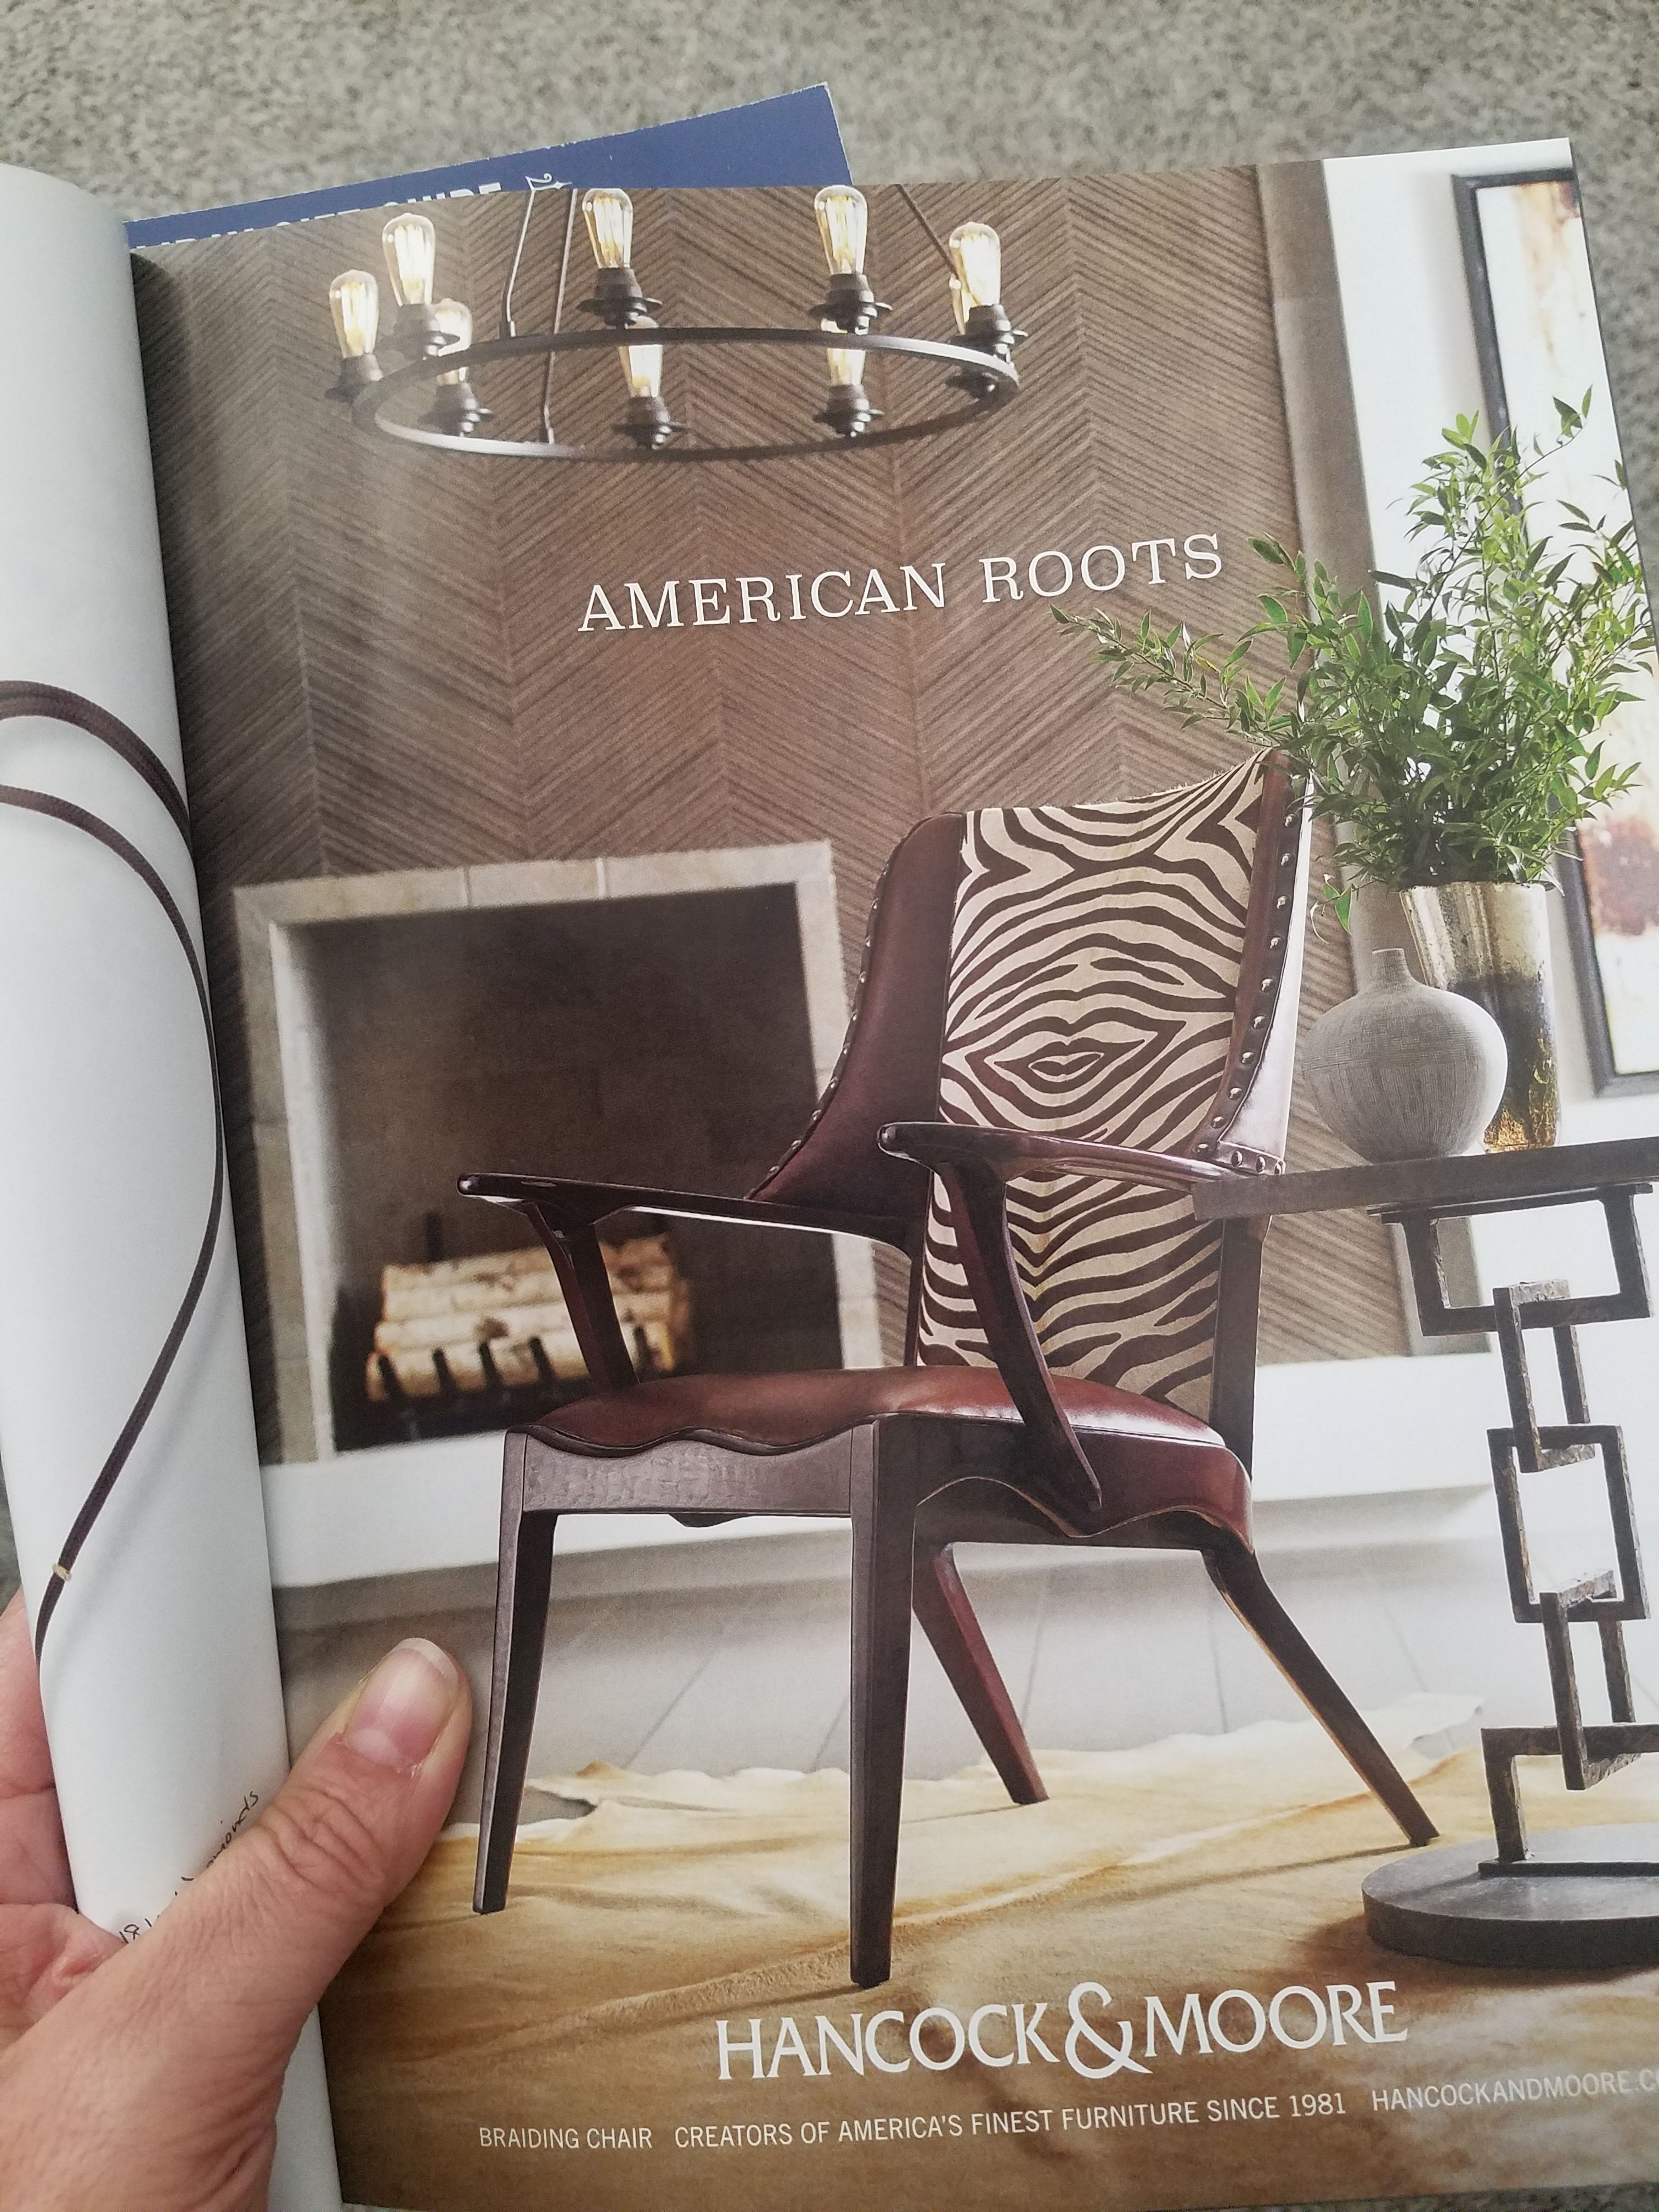 Chair Design Brands Swing For Office Our Are Featured In The Finest Magazines Hancock Moore Your Own With Ennis Fine Furniture Boise Spokane Reno Richland